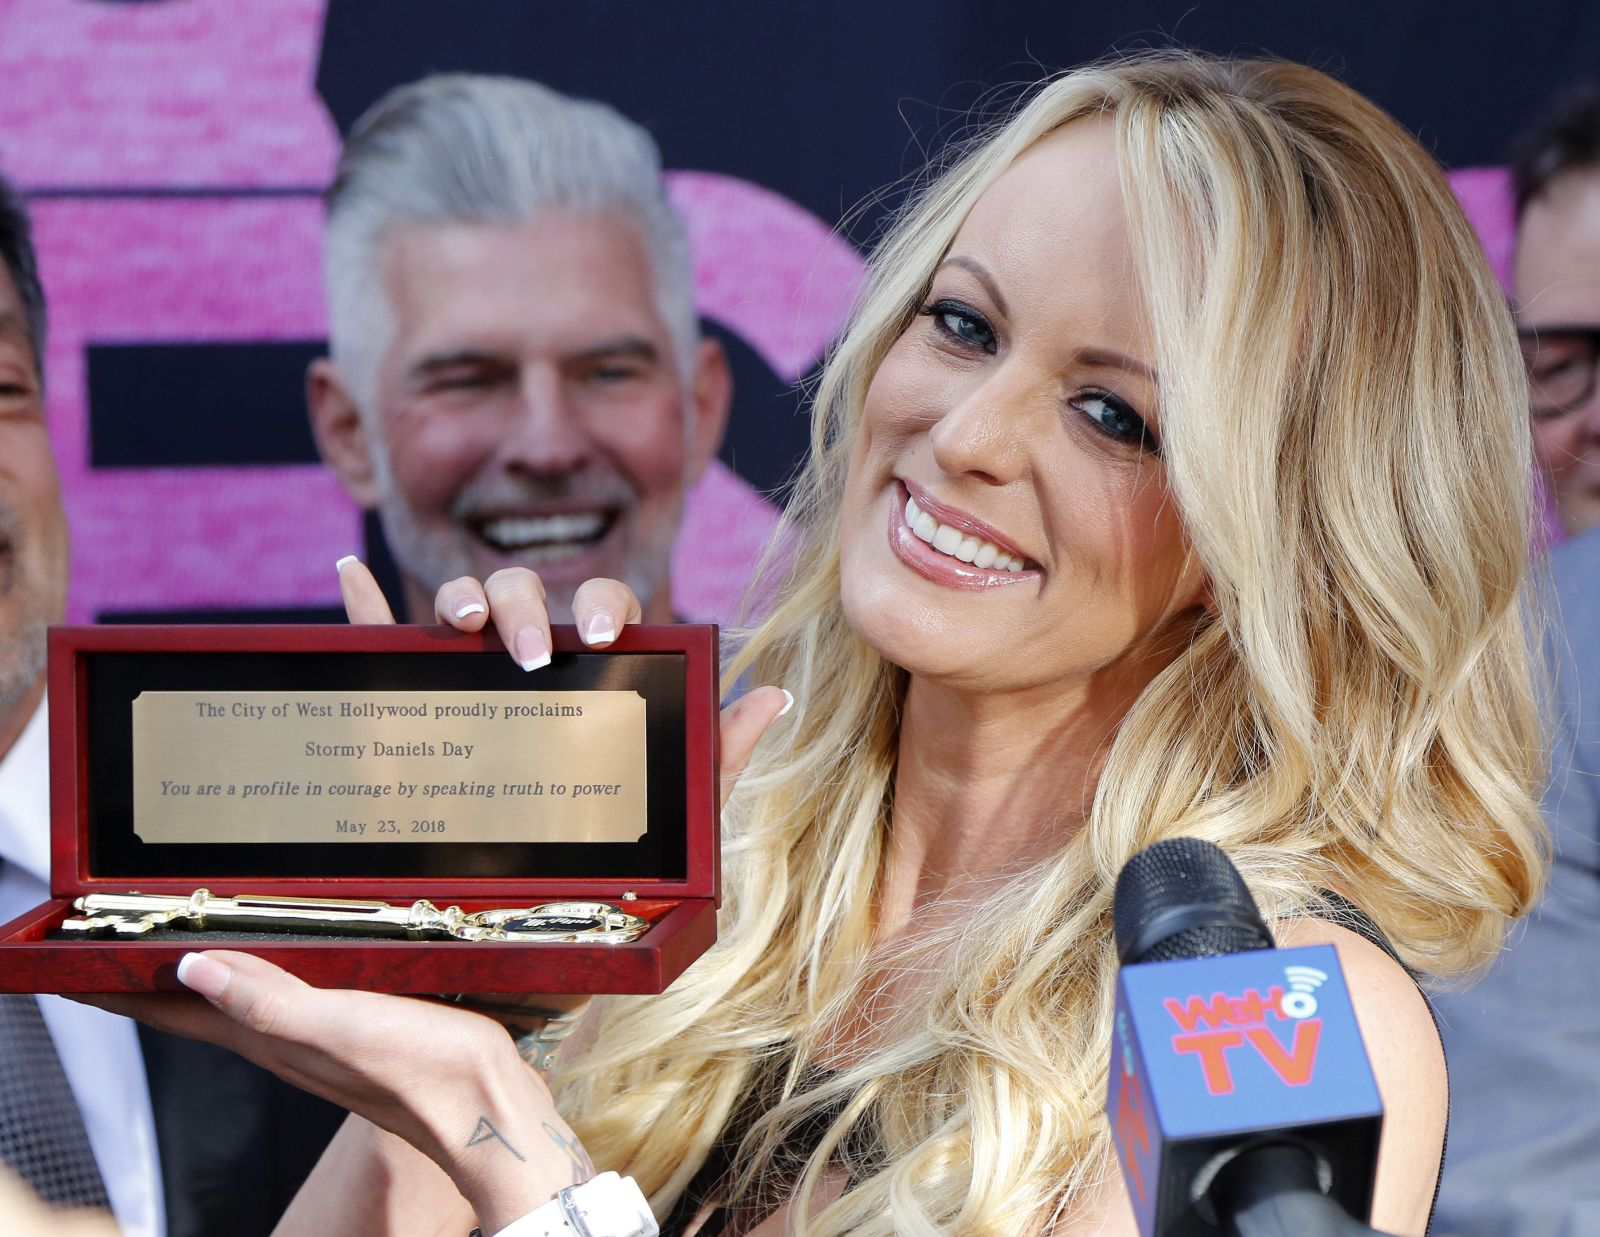 Stormy Daniels shows the Key during a ceremony for her receiving a City Proclamation and Key to the City on Wednesday, May 23, 2018 in West Hollywood, Calif. (AP Photo/Ringo H.W. Chiu)